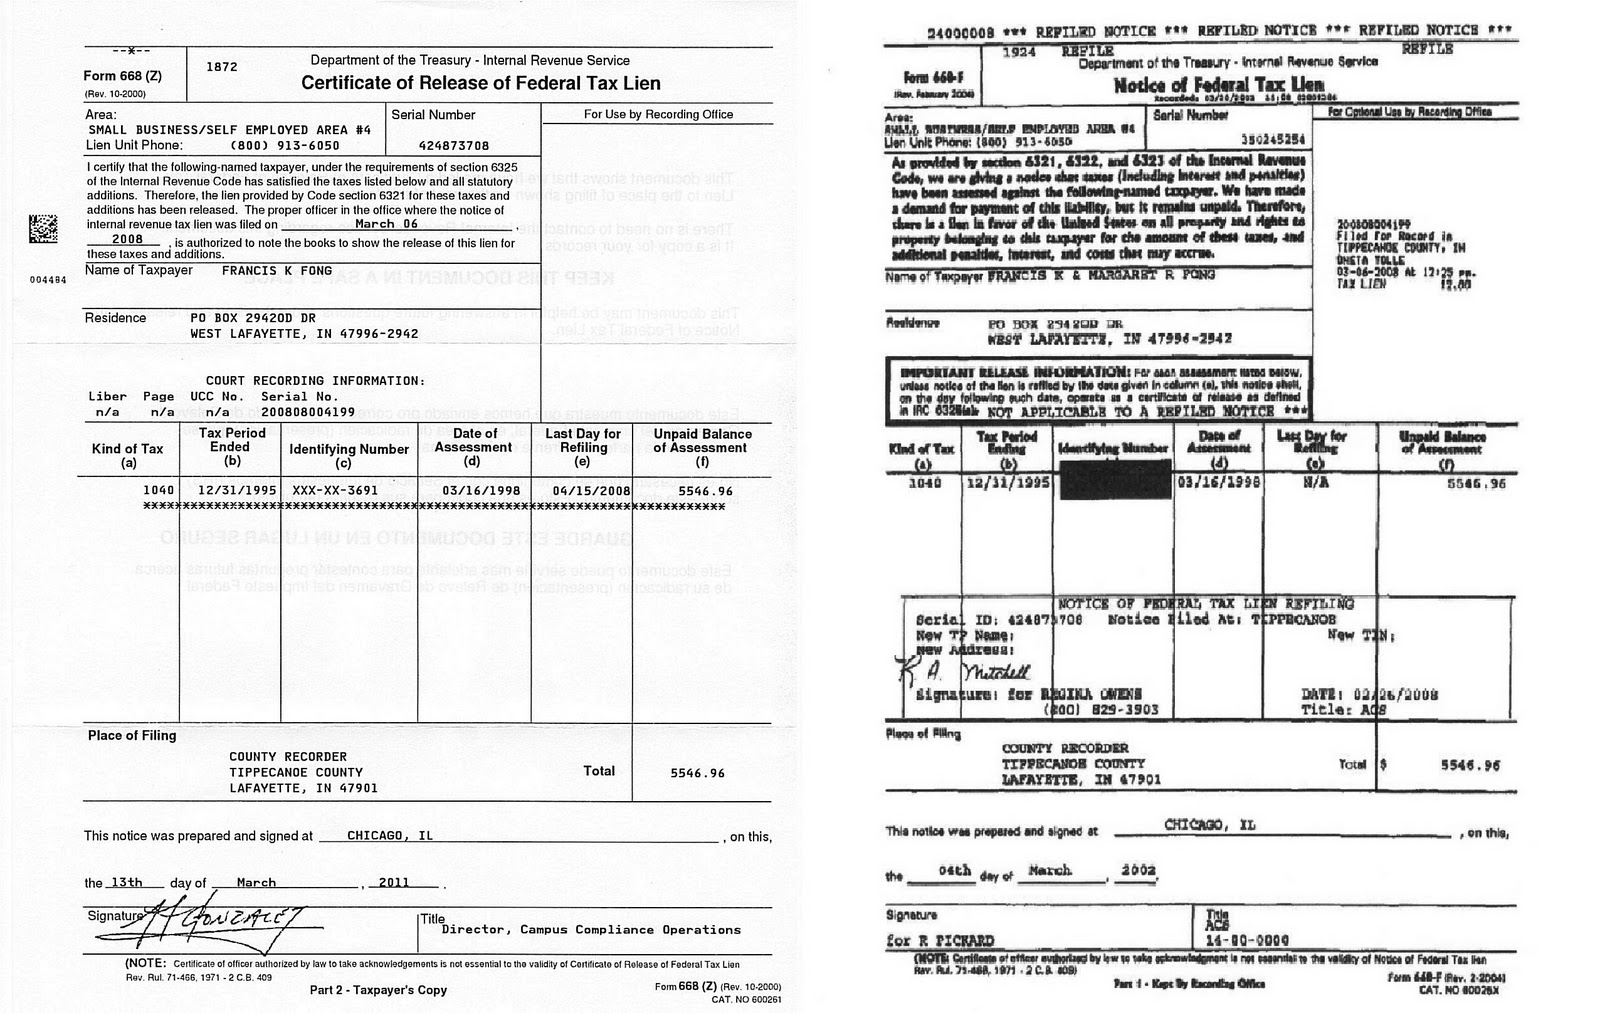 Federal Tax Lien Form 668z Certificate Of Release Of Federal Tax Lien